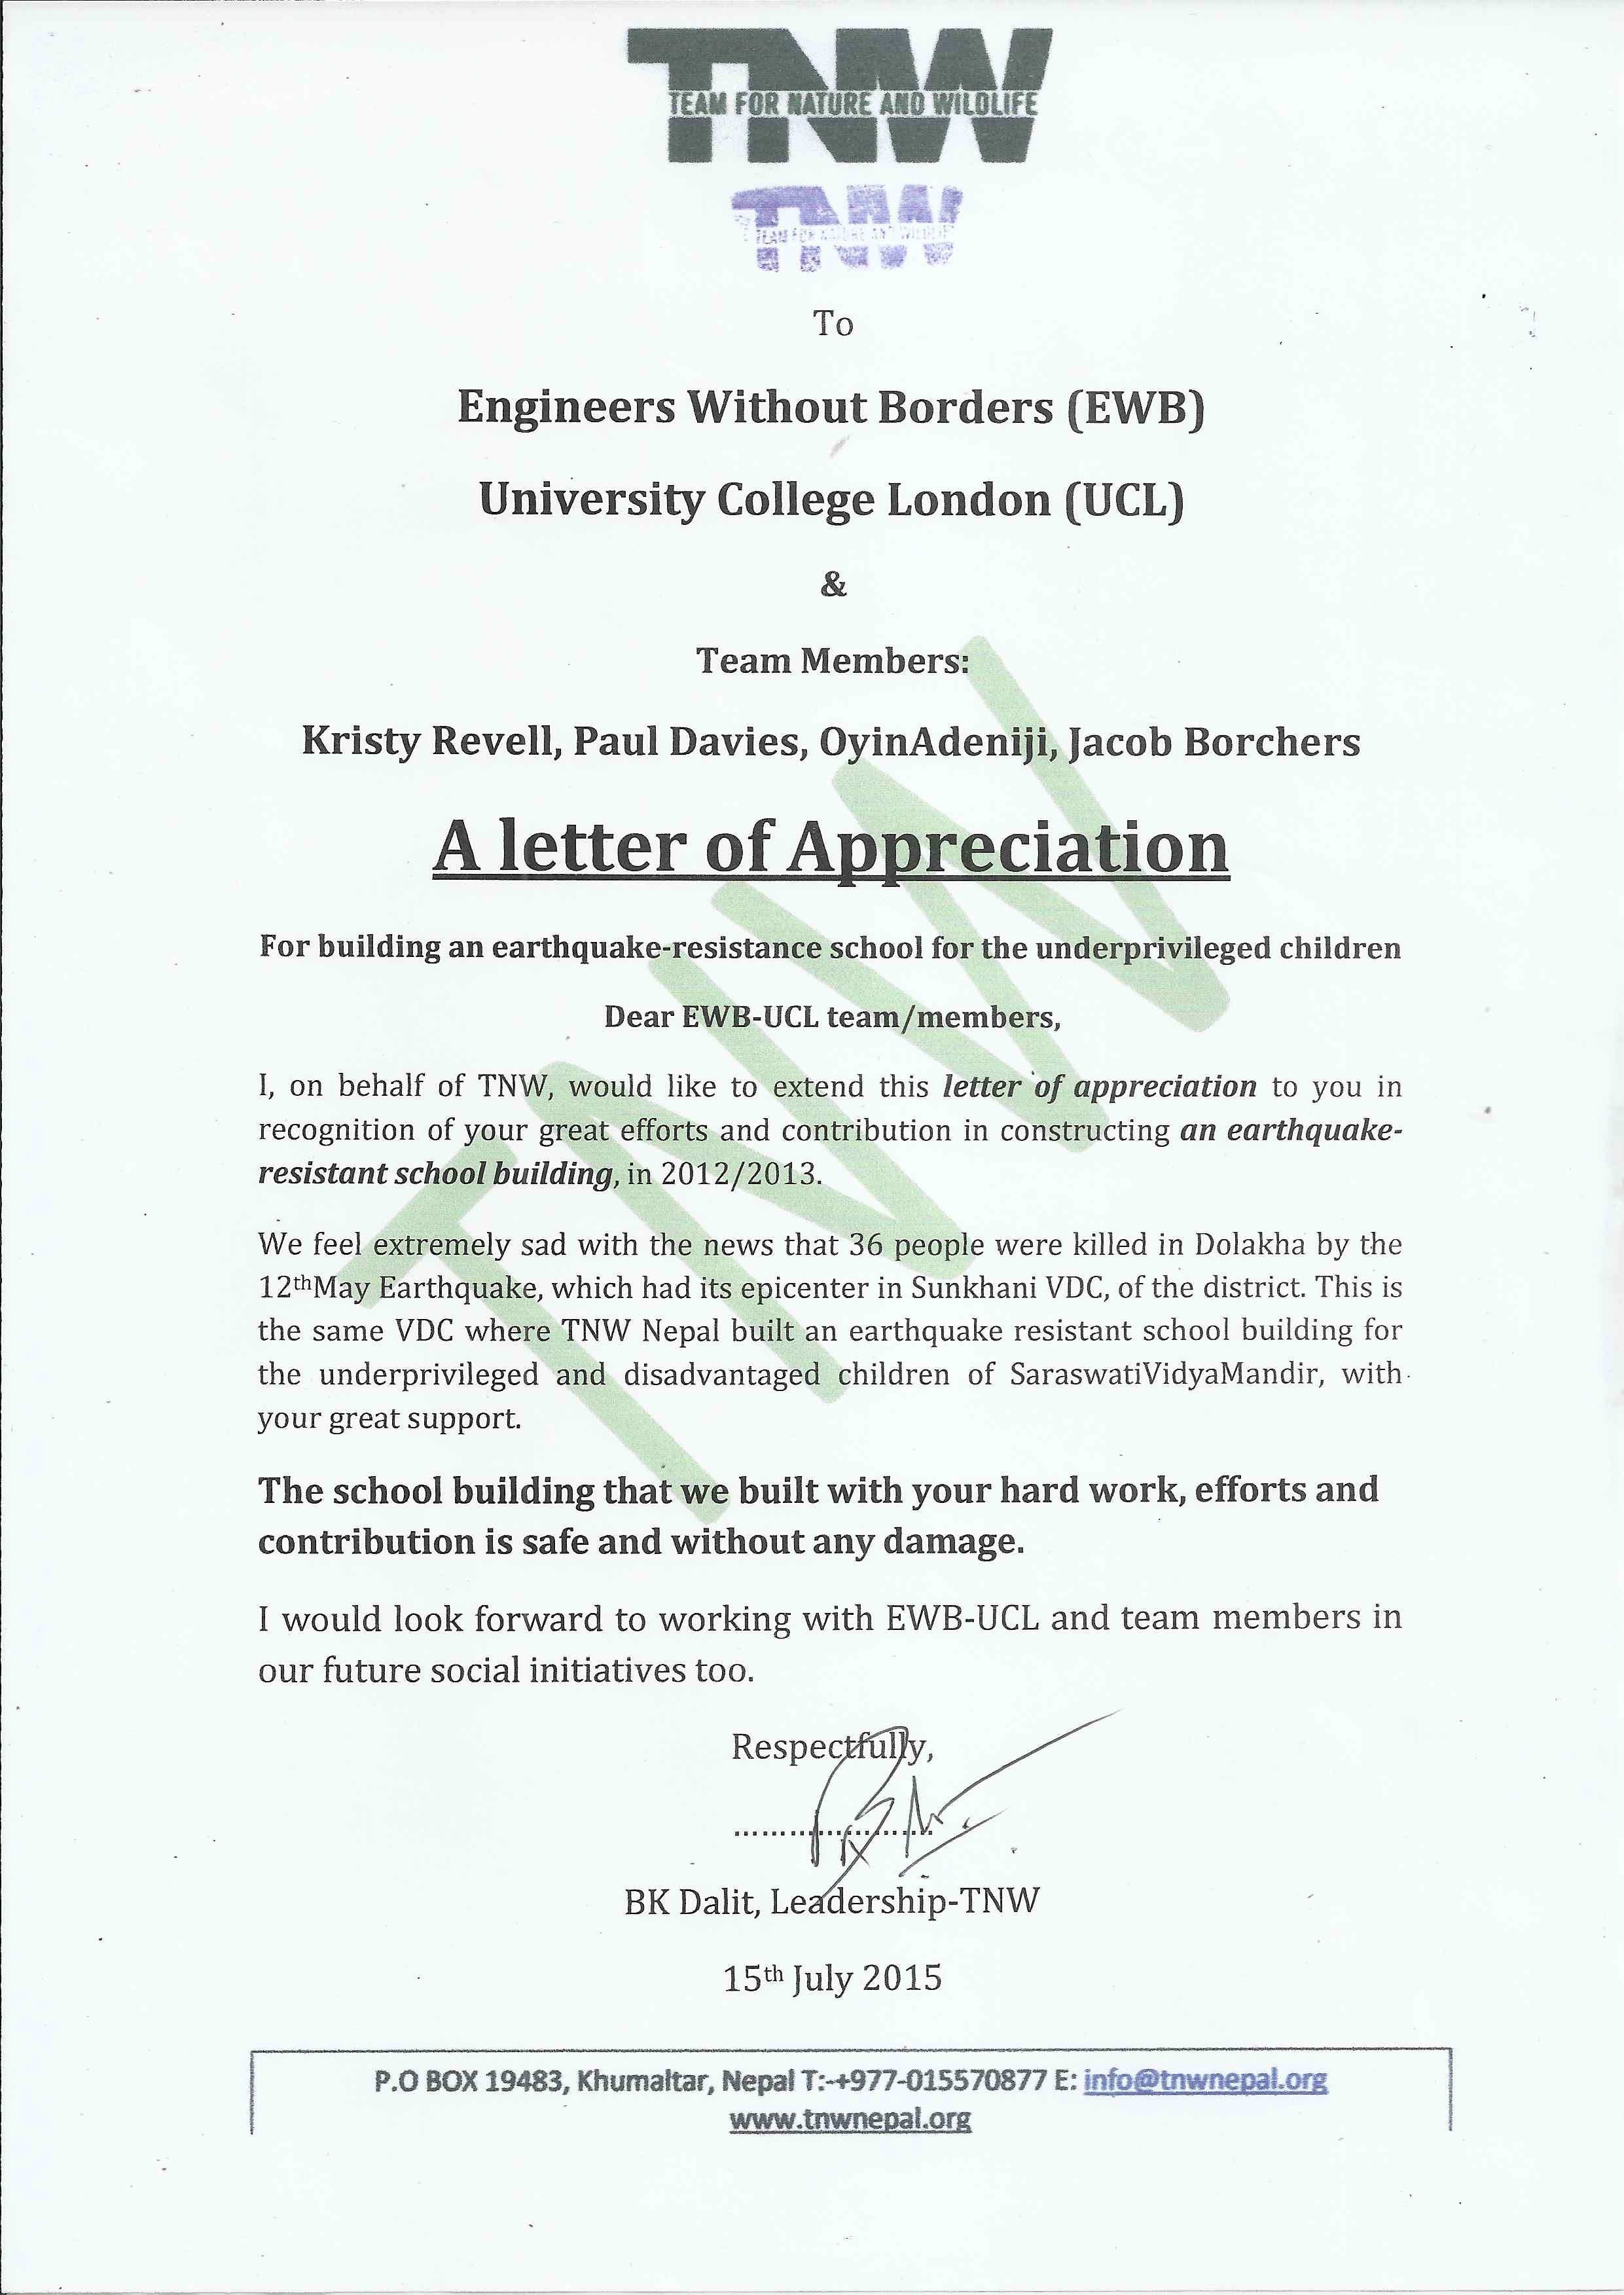 Letter of Appreciation sent to Engineers Without Borders ...